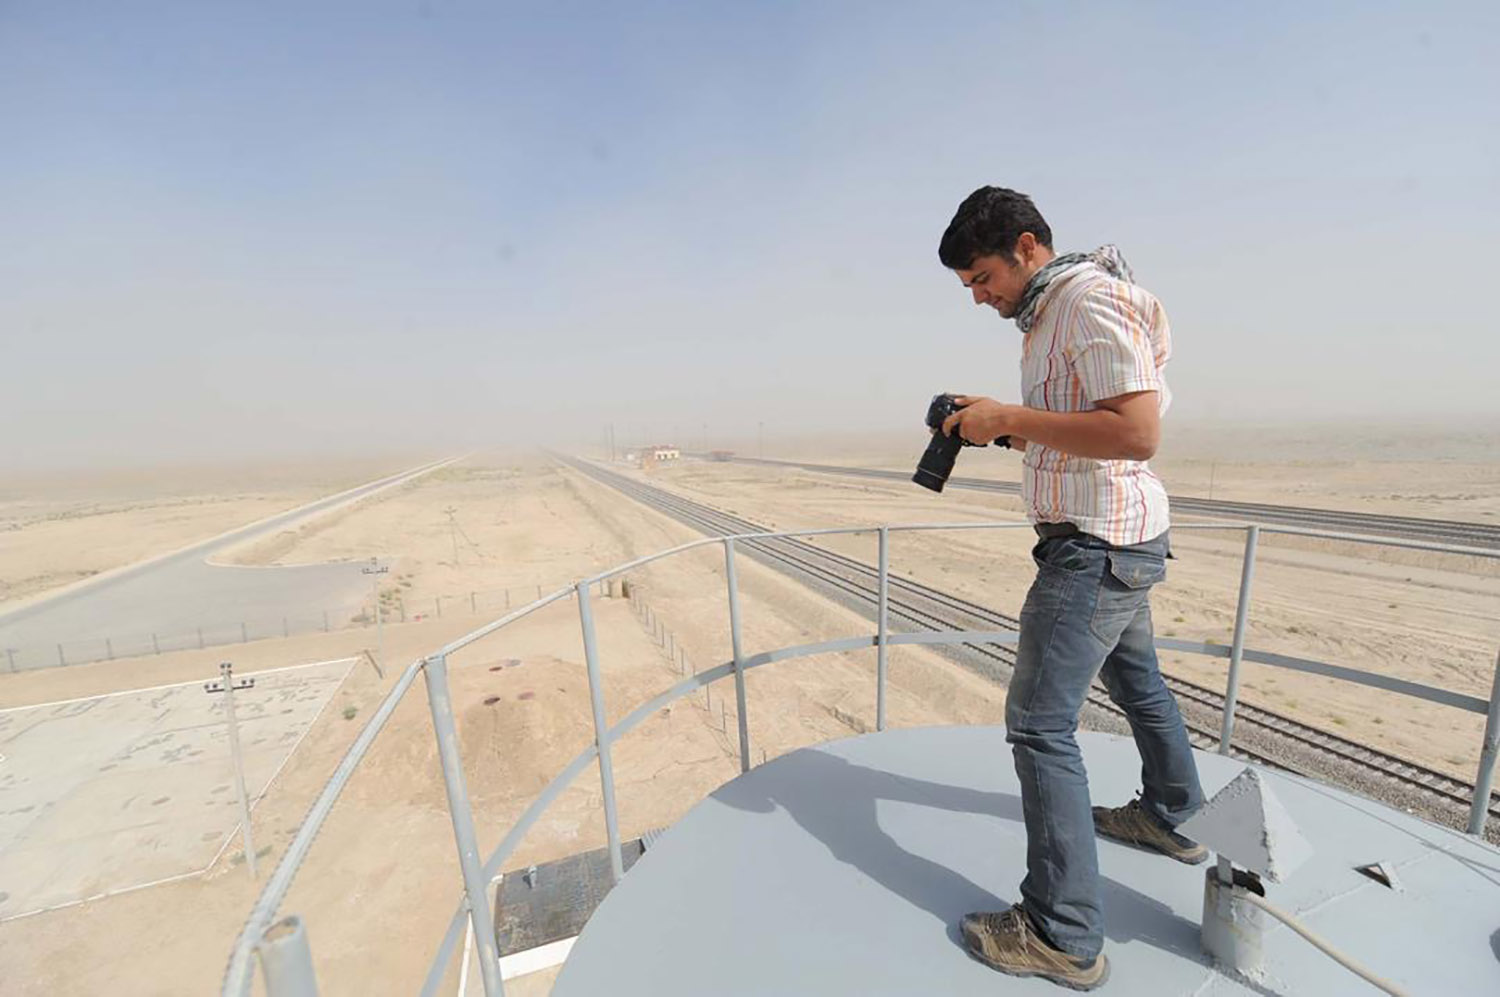 Jalali at work in XXXX, Afghanistan, on Feb. 13 as chief photographer for an international press agency.